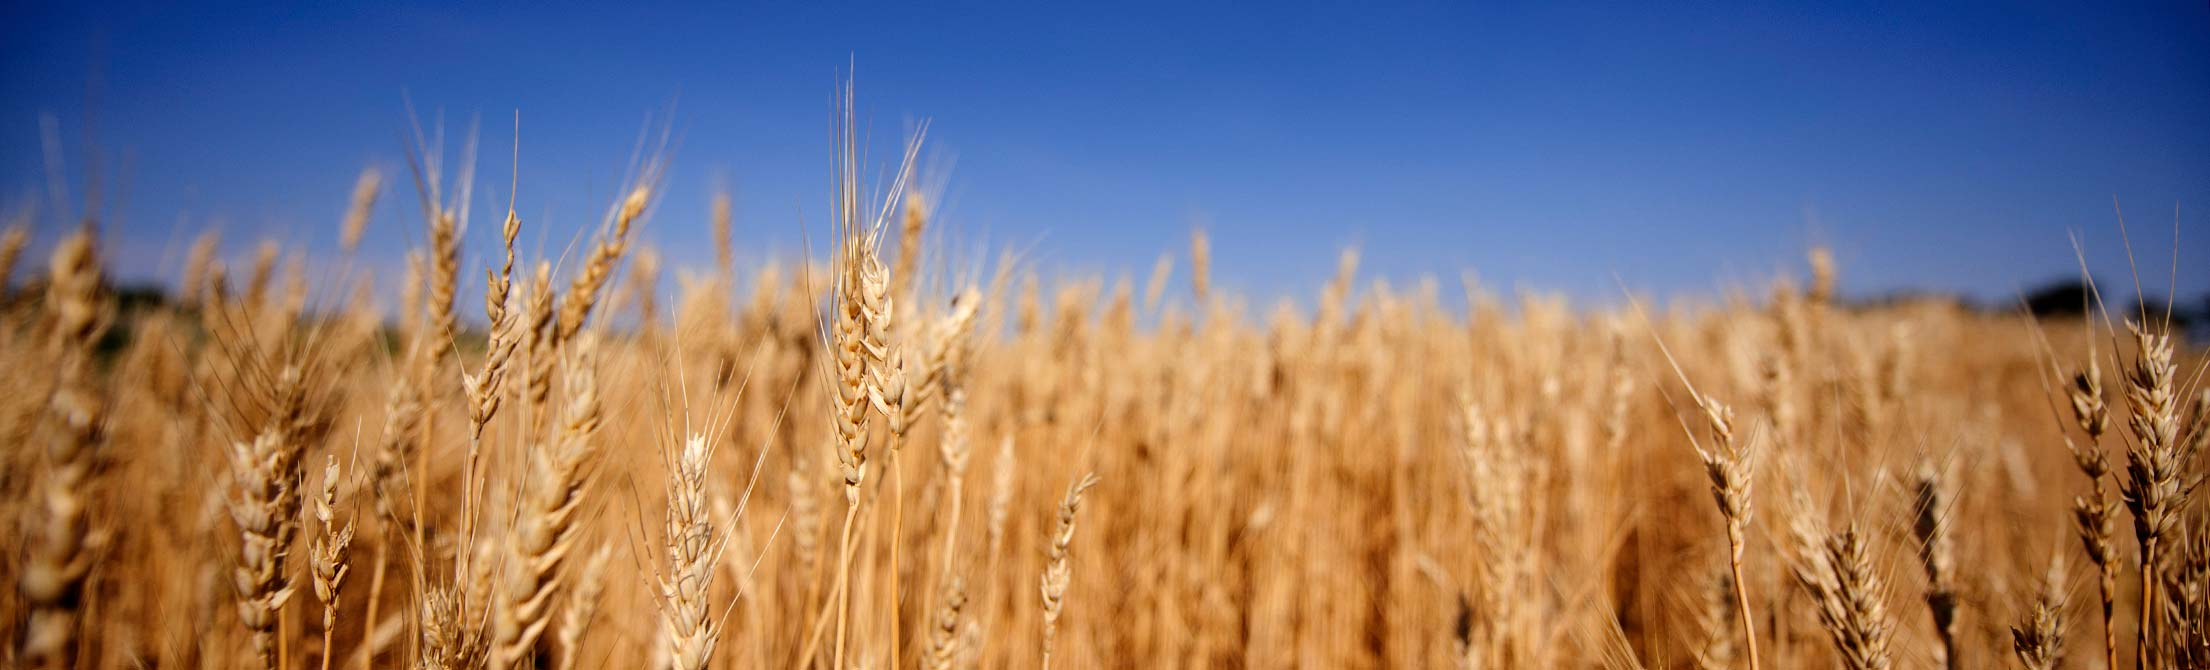 Image of field of wheat